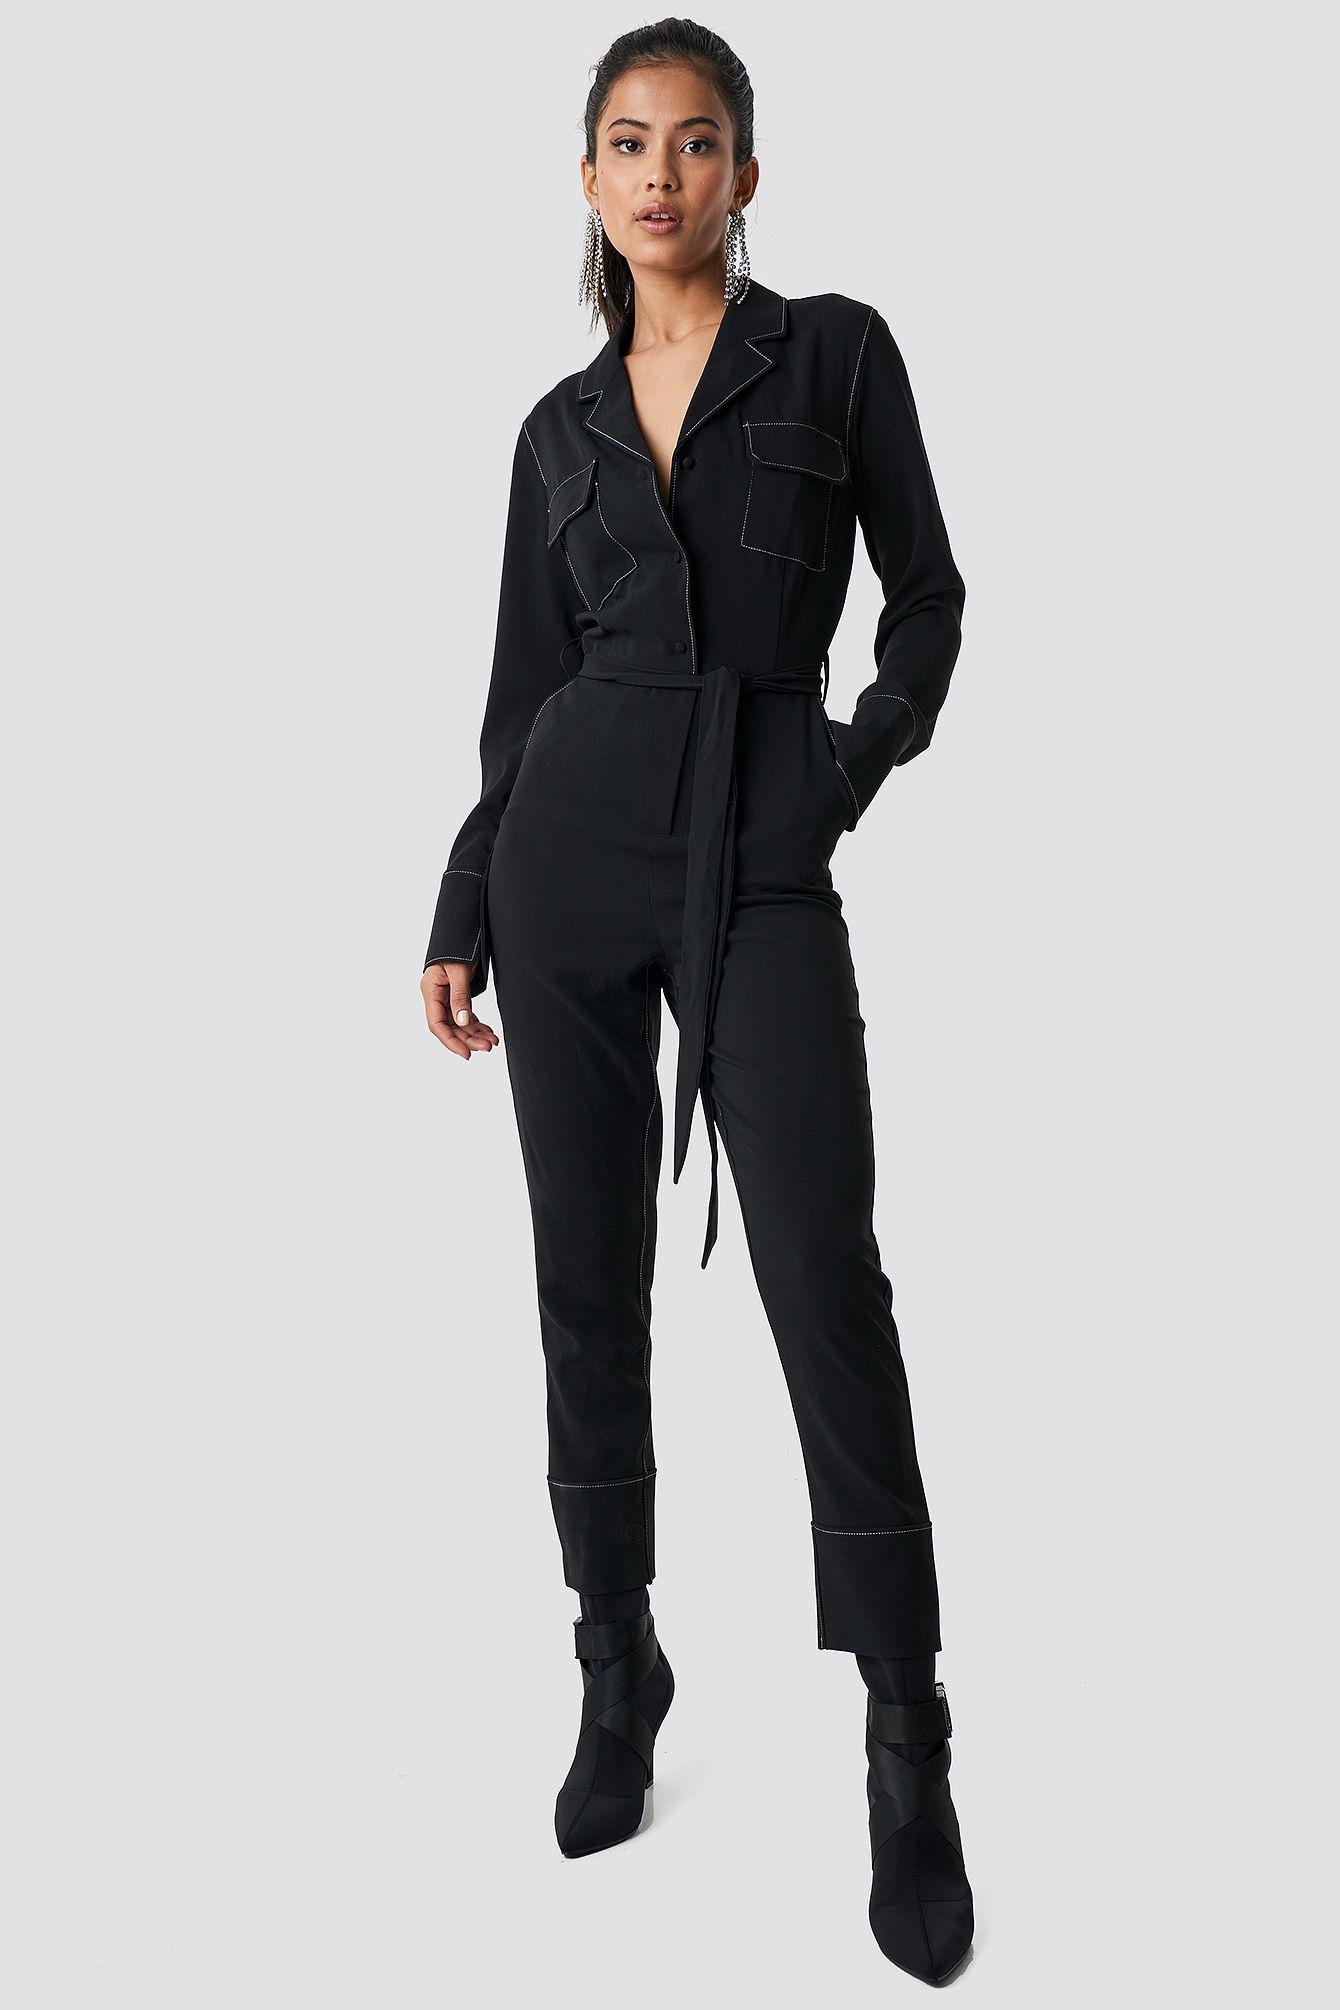 558f31d44ab4 This jumpsuit by Hanna Friberg x NA-KD features a lapel neckline, a self